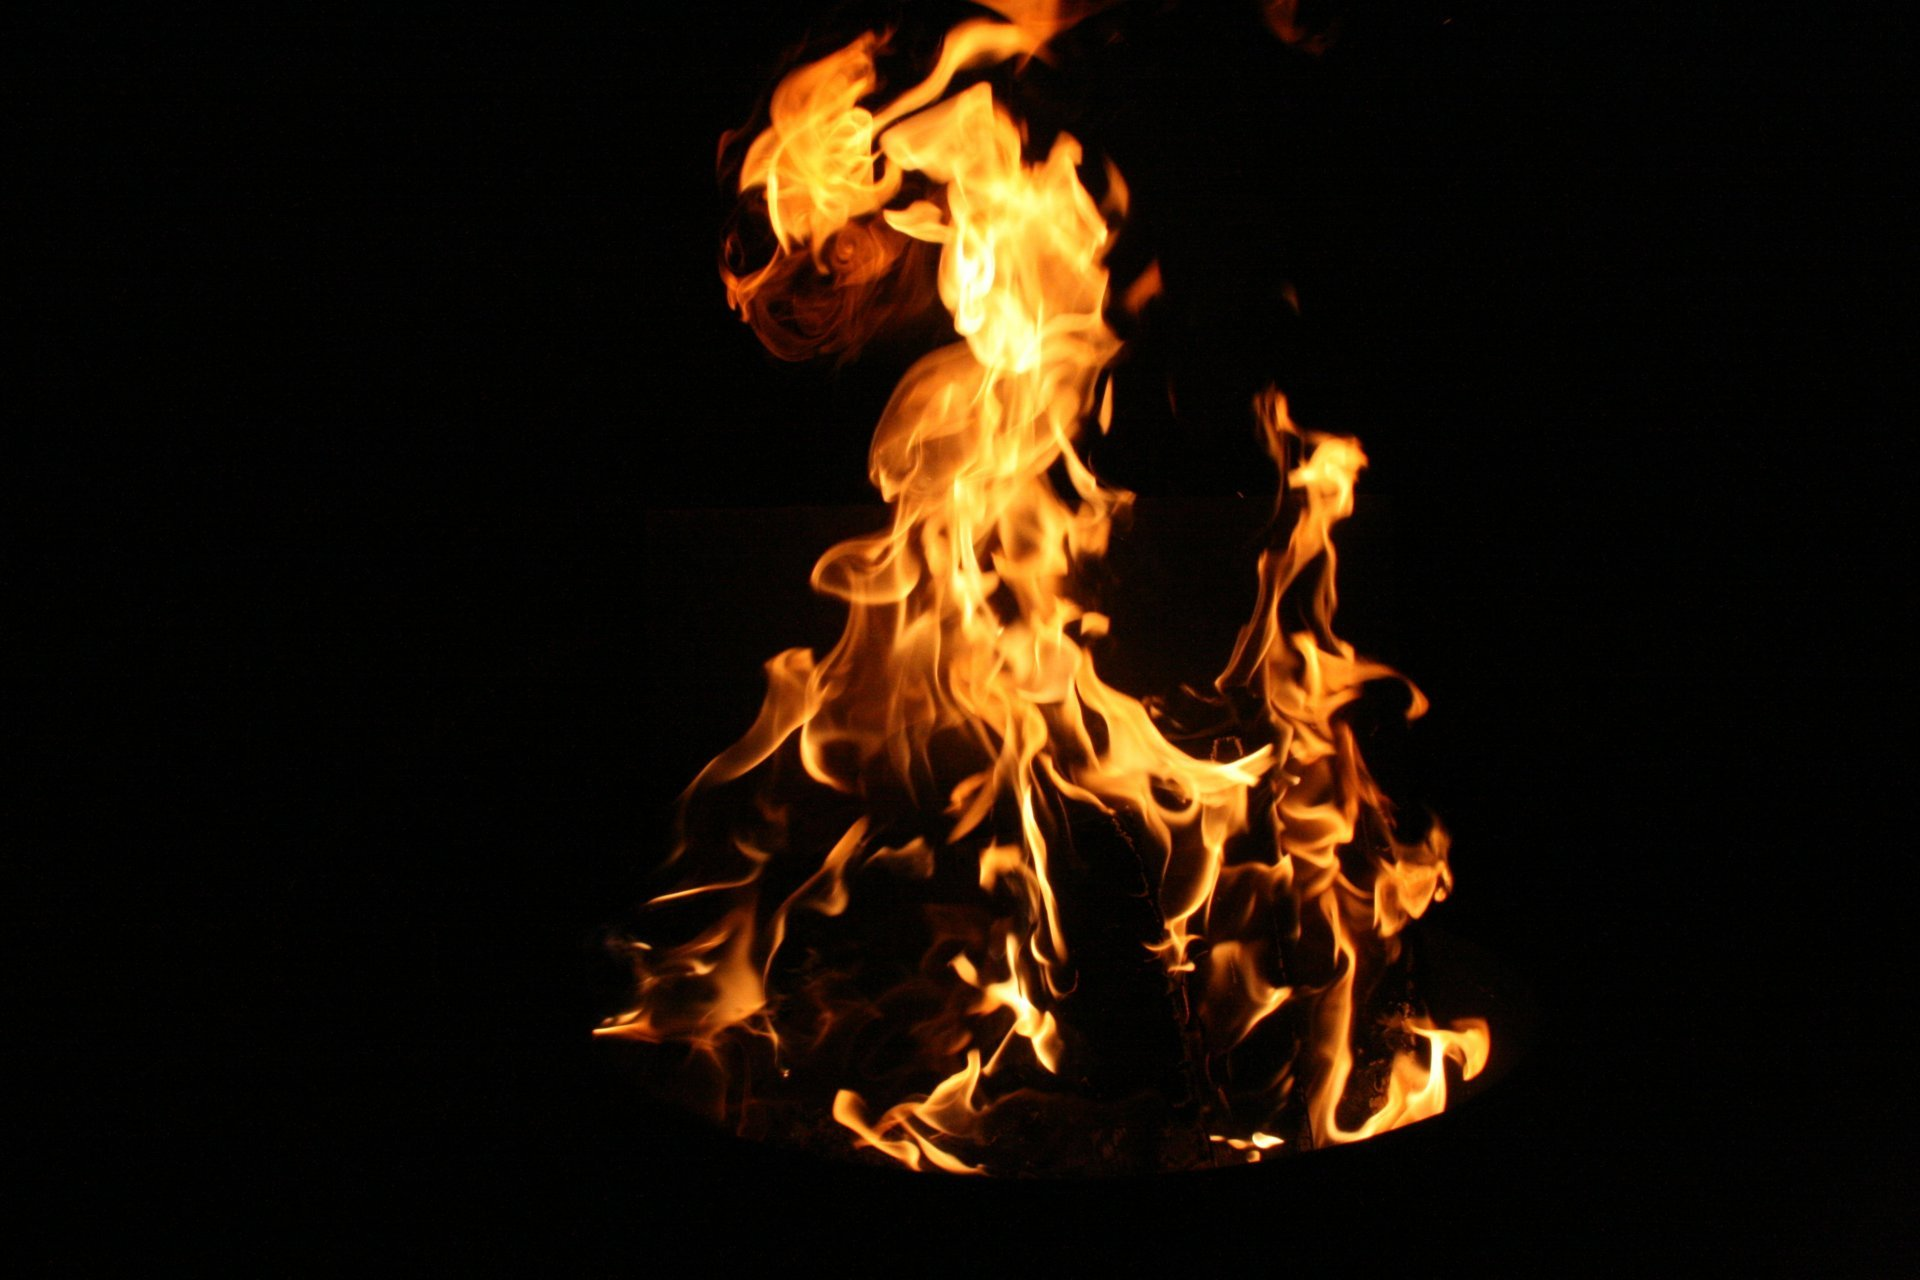 background wallpaper close up nature fire flame flames night HD ...